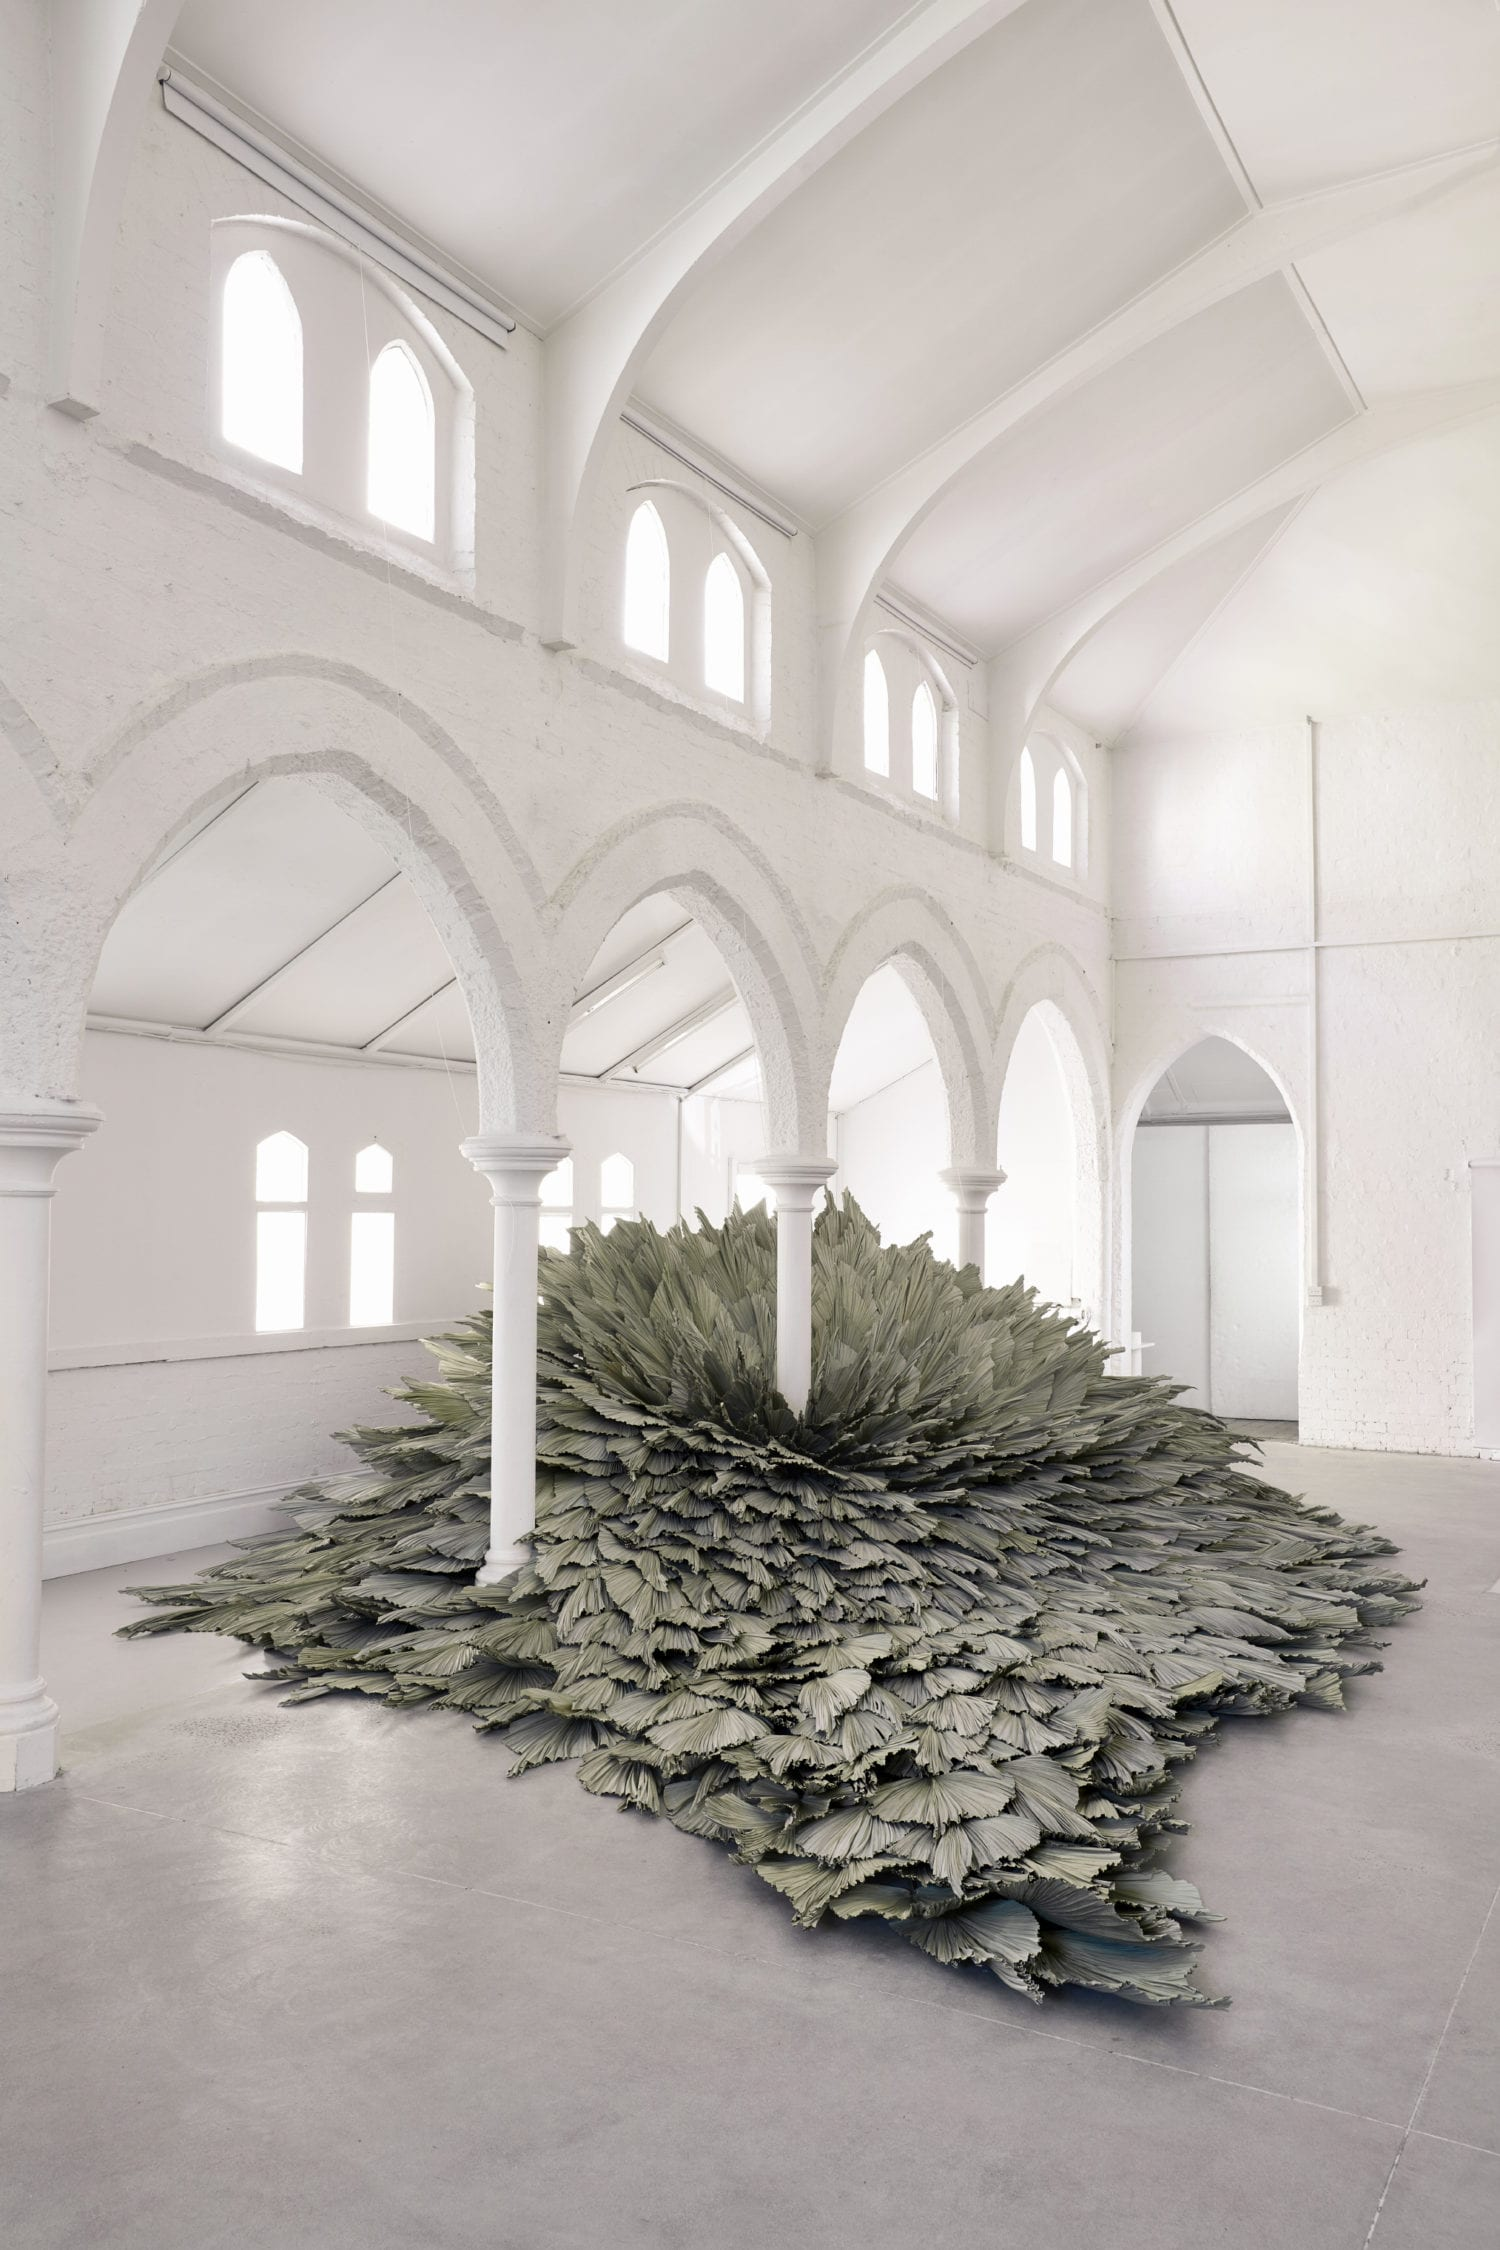 Proximity Botanical Installation By Wona Bae And Charlie Lawler Of Loose Leaf Yellowtrace 01